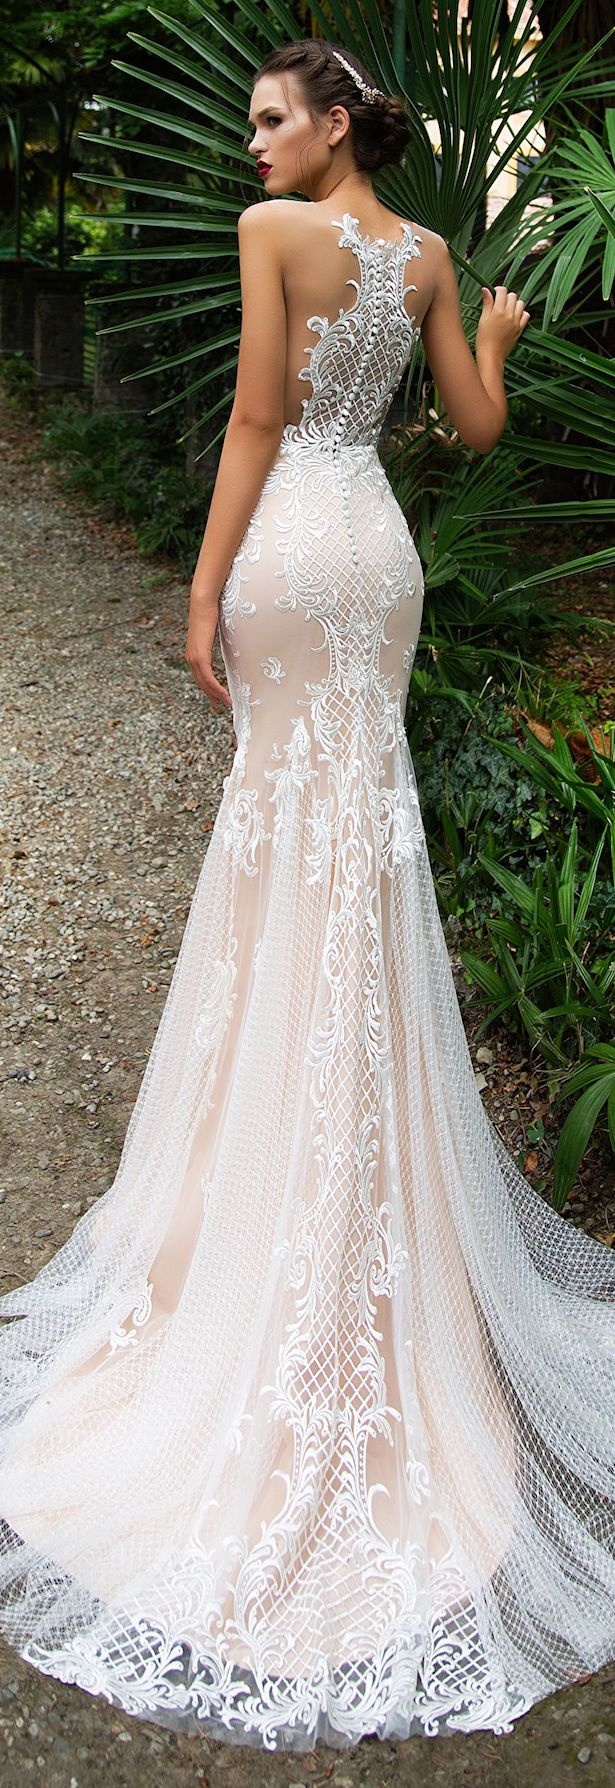 Wedding Dresses 2017 Near Me : Wedding dresses by milla nova white desire bridal